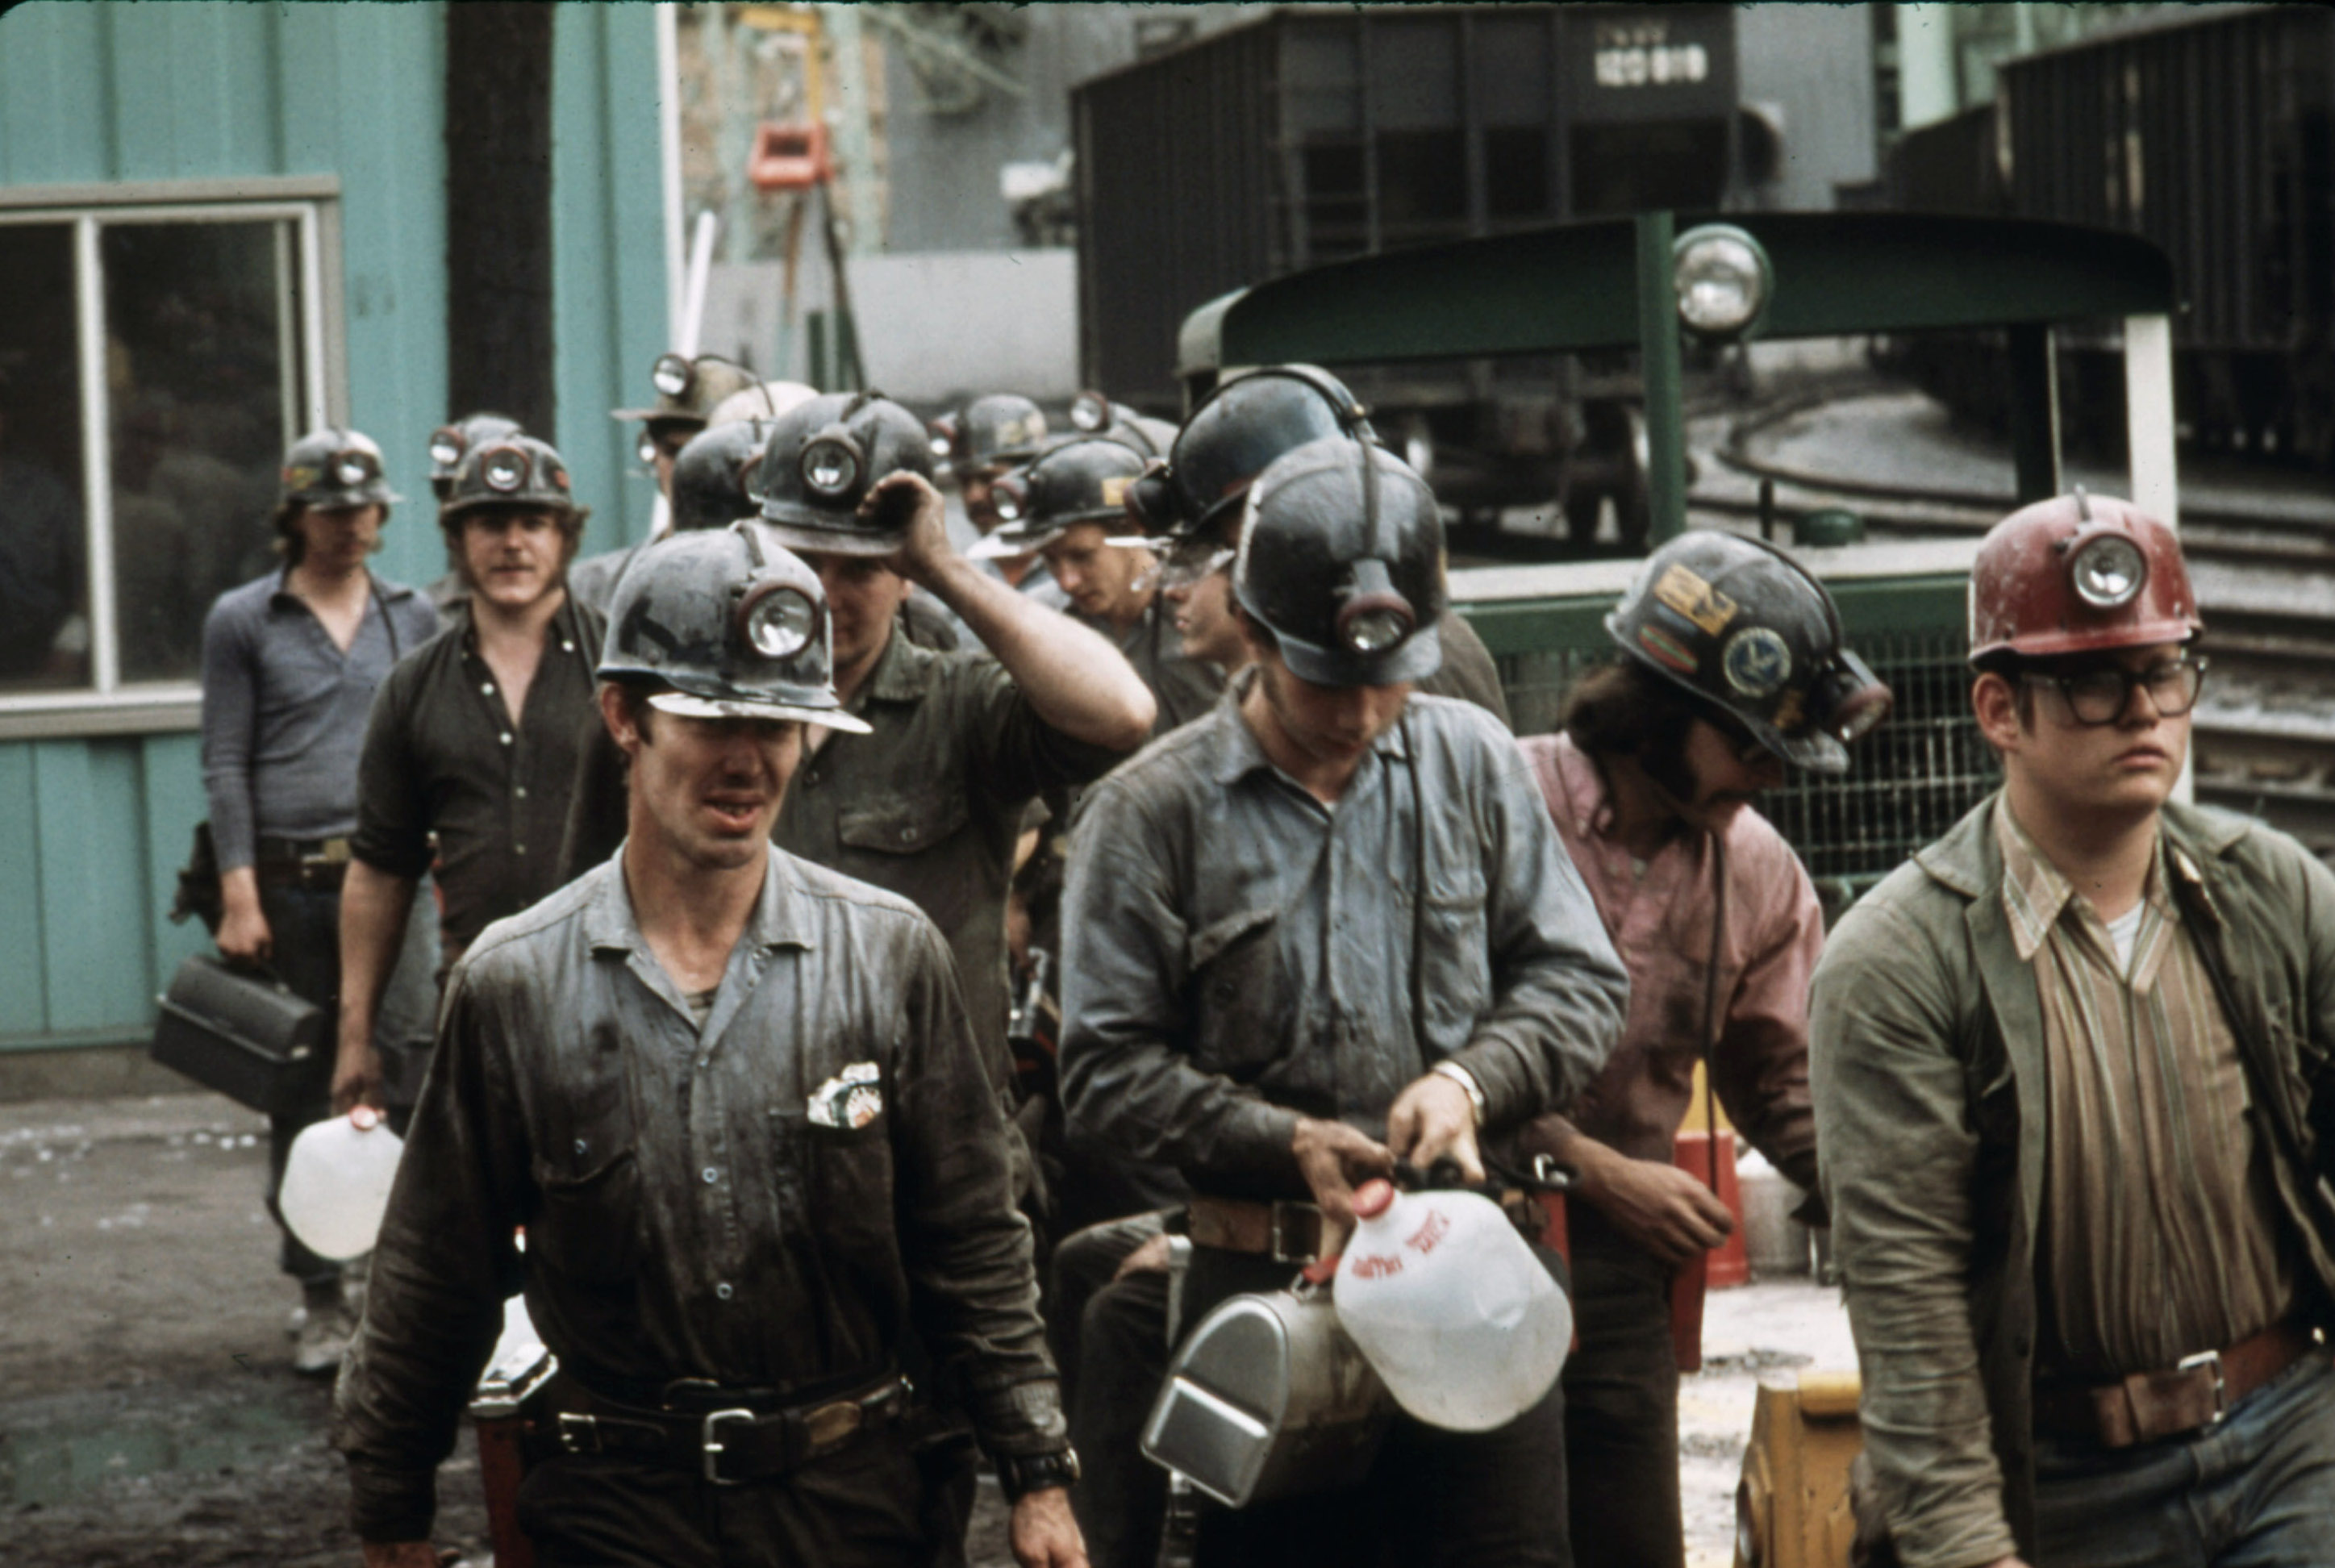 Historical miners going to work